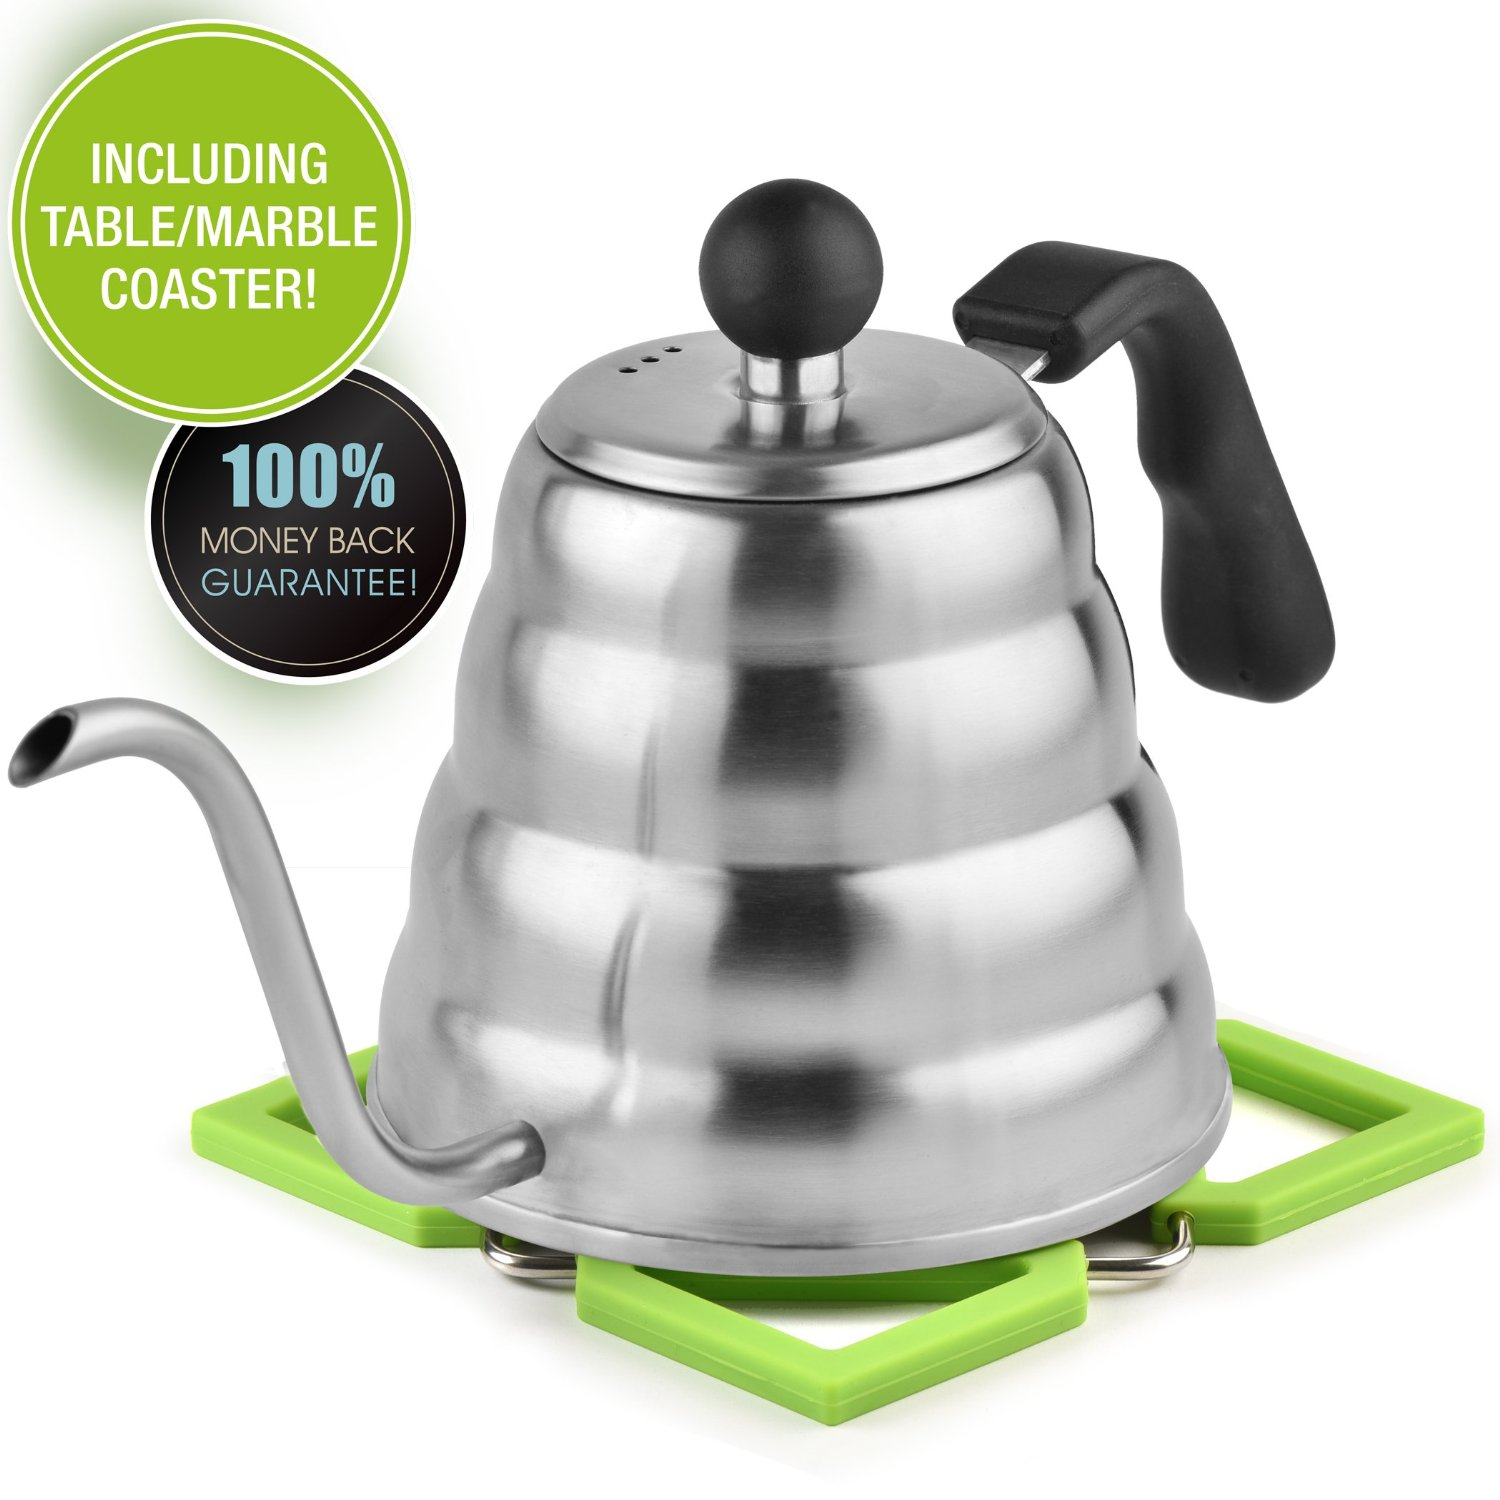 Kettle with silicon coaster